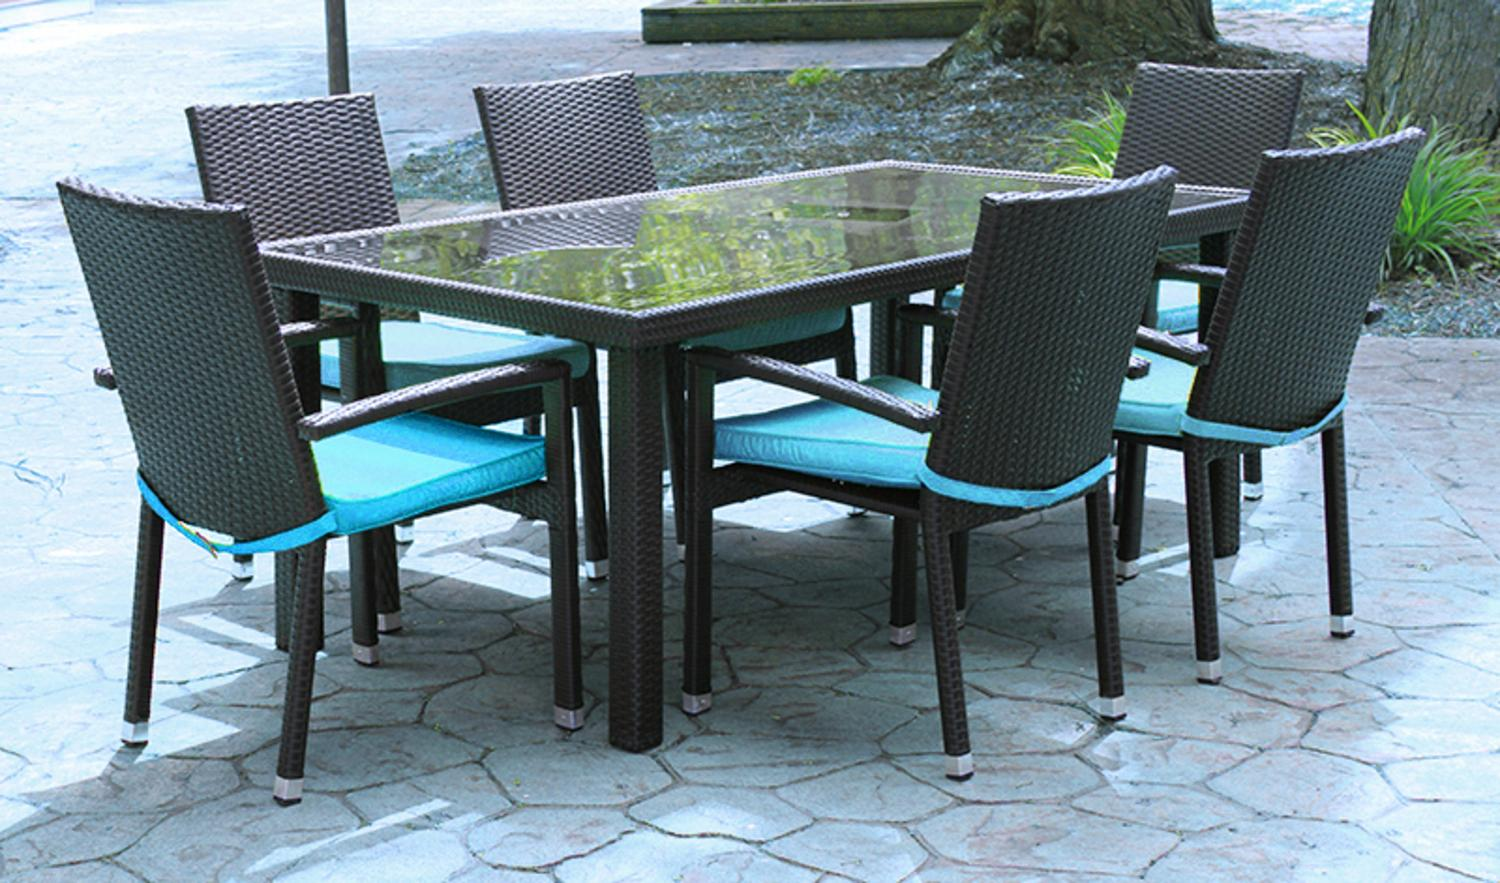 7 Piece Black Resin Wicker Outdoor Furniture Patio Dining Set   Blue  Cushions